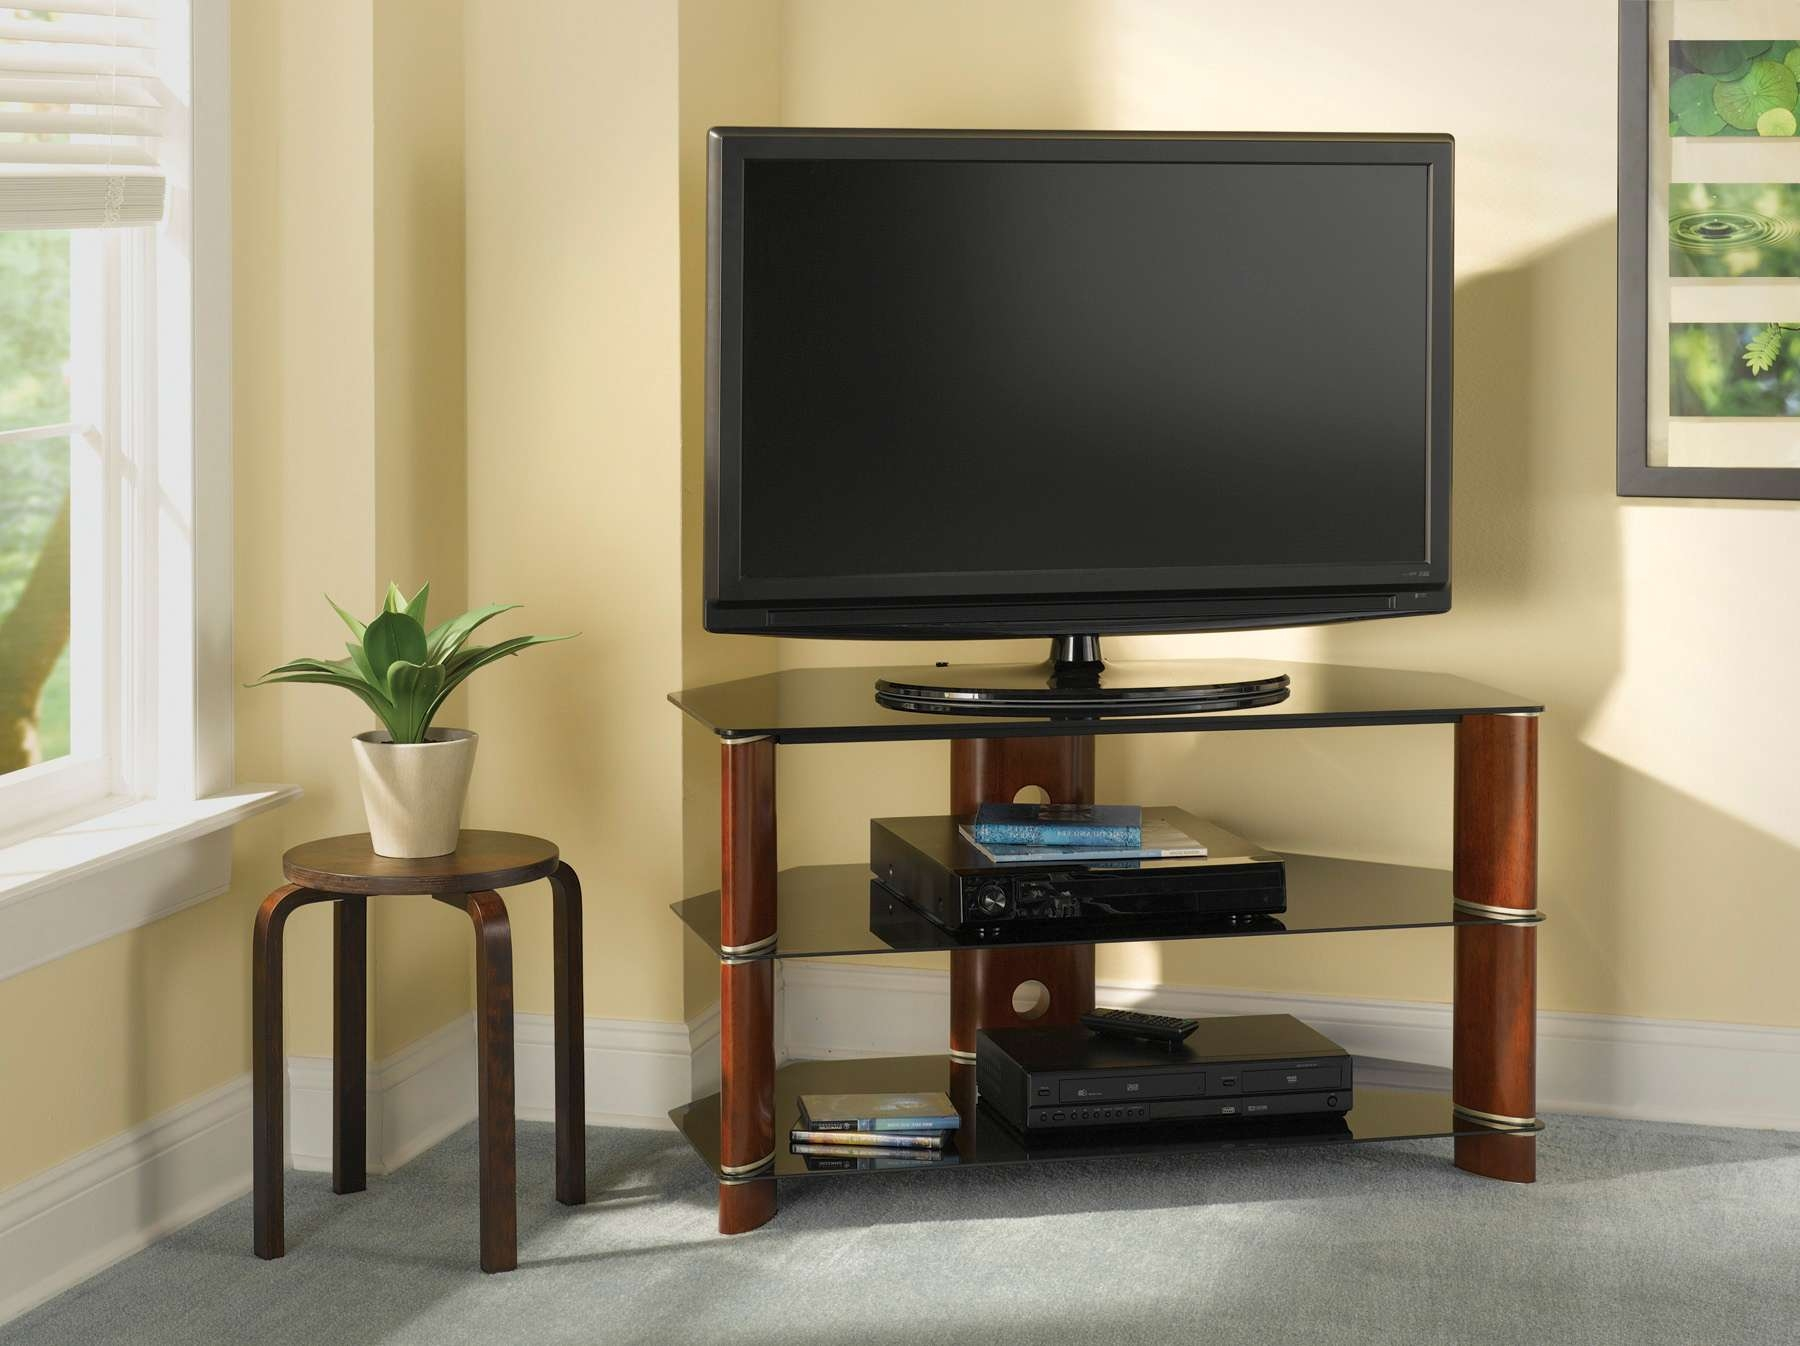 Outstanding Modern Corner Tv Stand And Contemporary Trends Images Pertaining To Modern Corner Tv Stands (View 16 of 20)